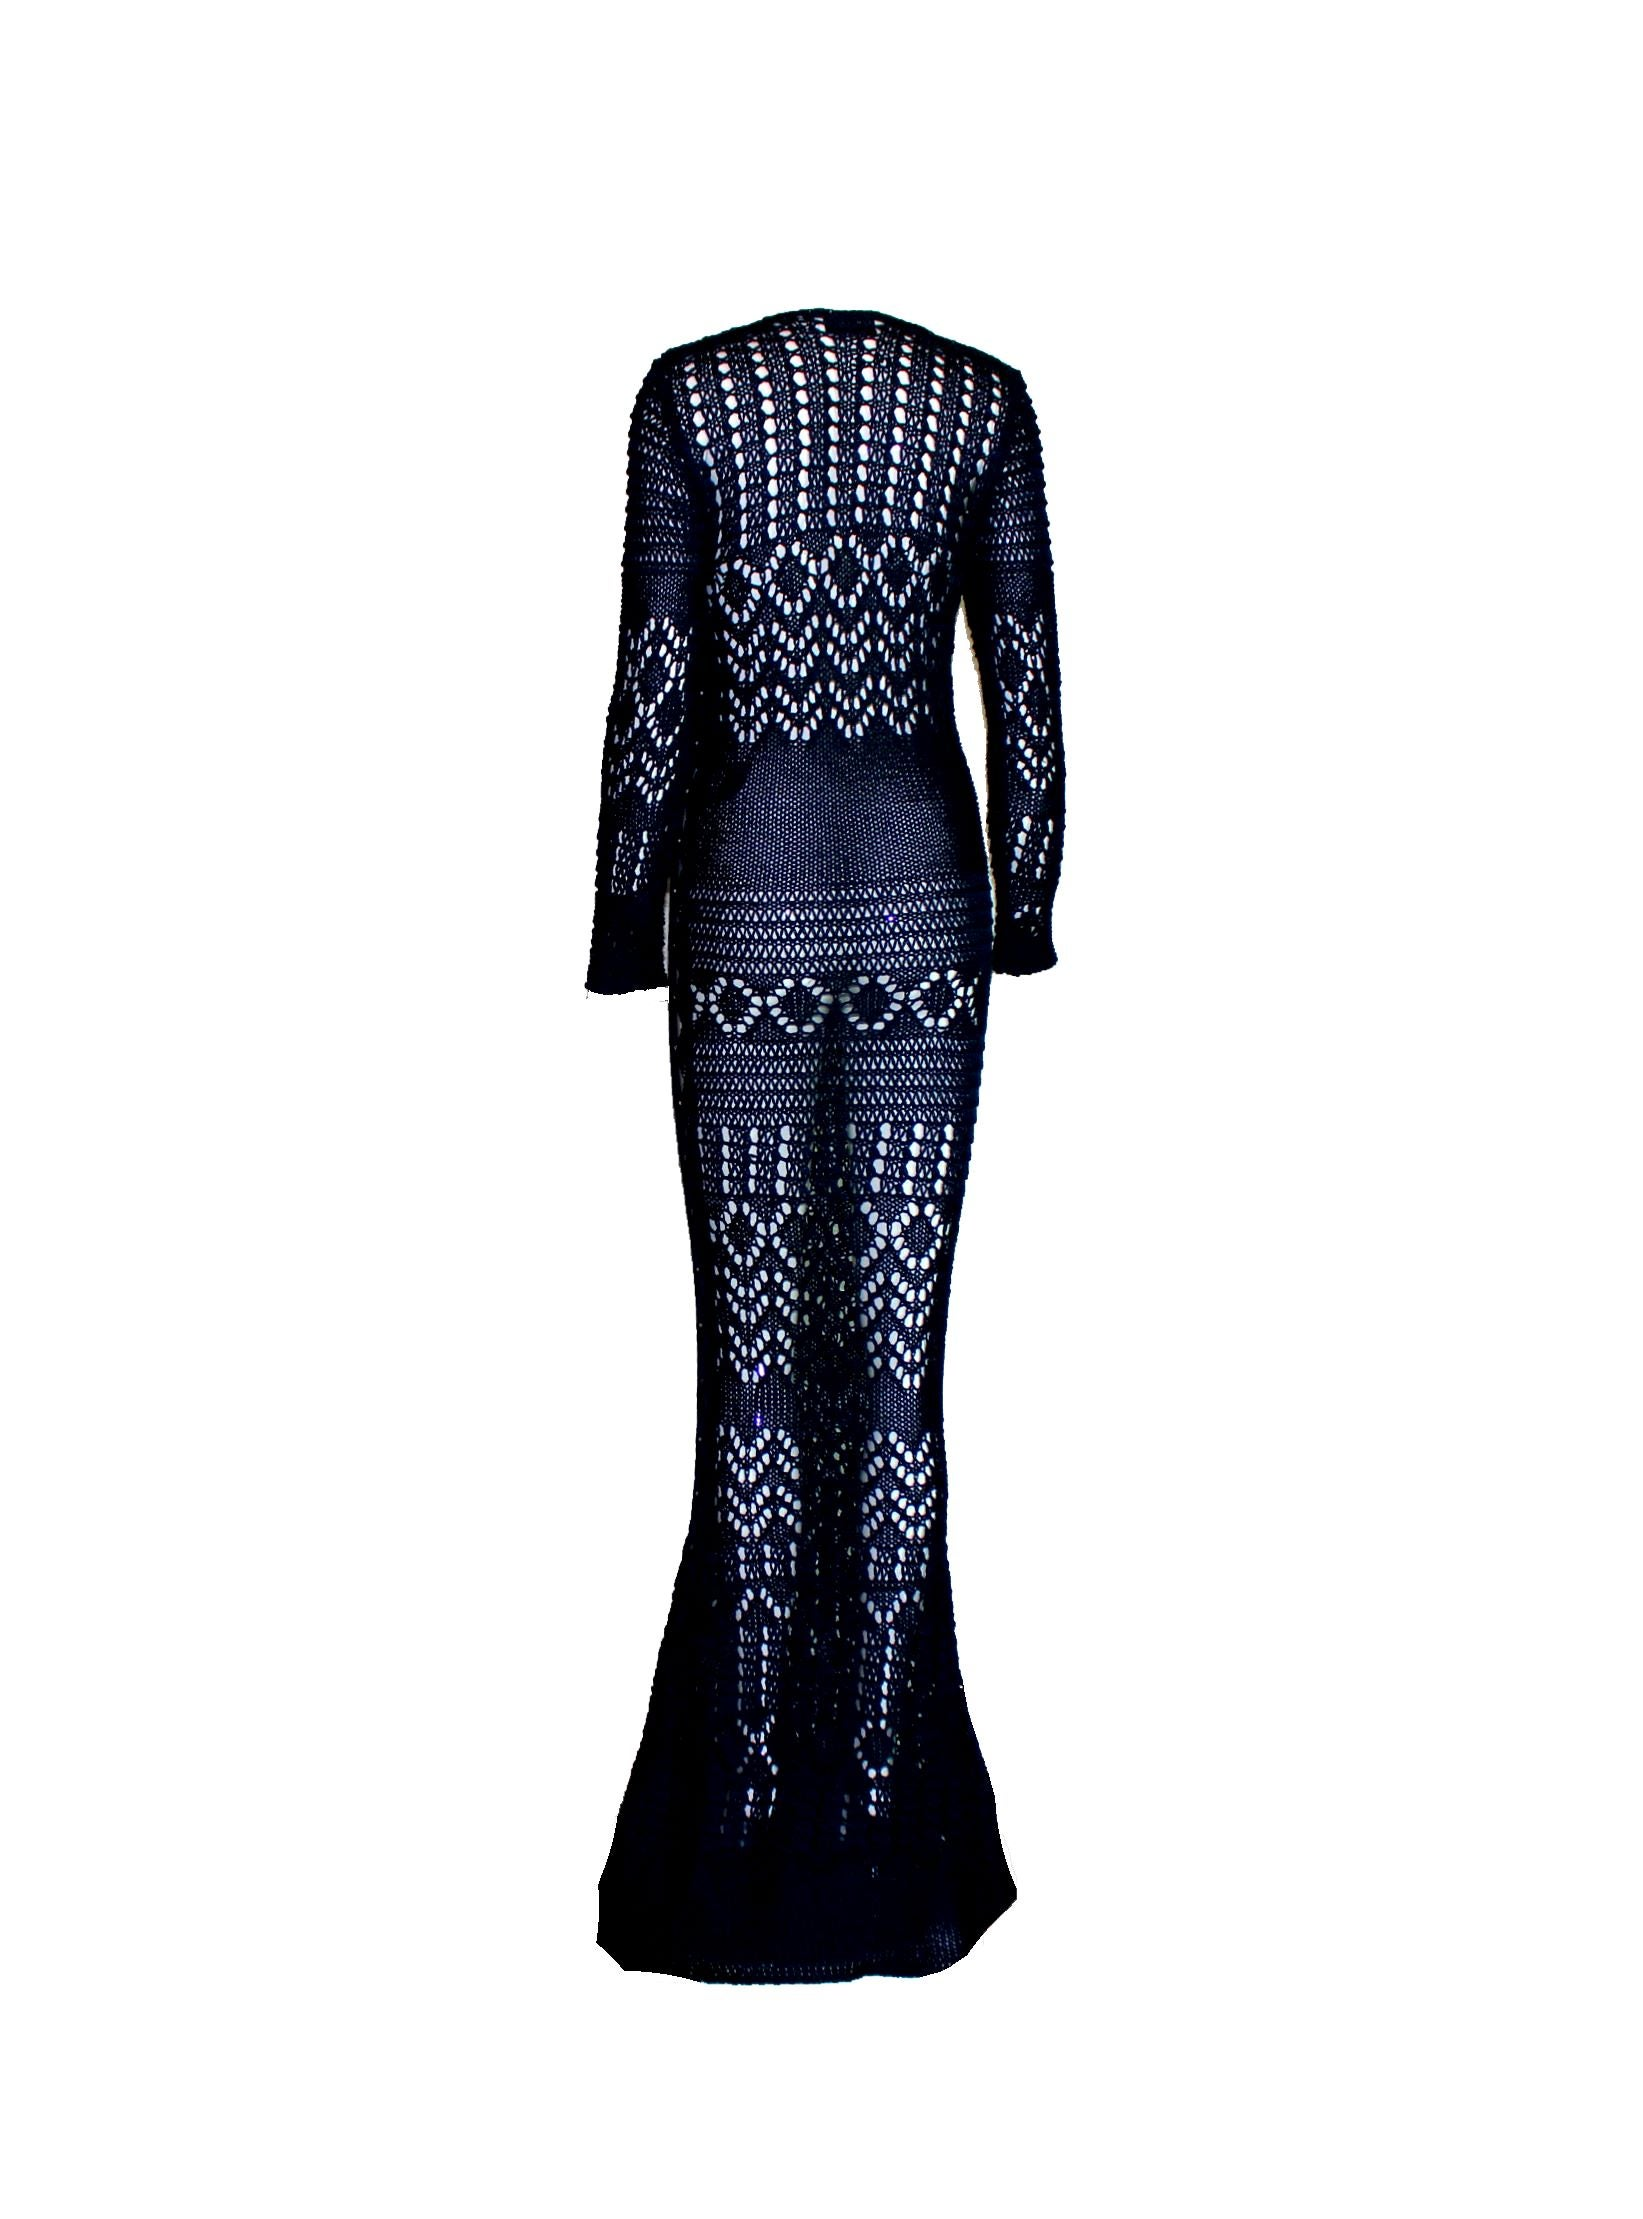 09560add5c3 Breathtaking Midnight Blue Emilio Pucci Crochet Knit Evening Gown Dress For  Sale at 1stdibs